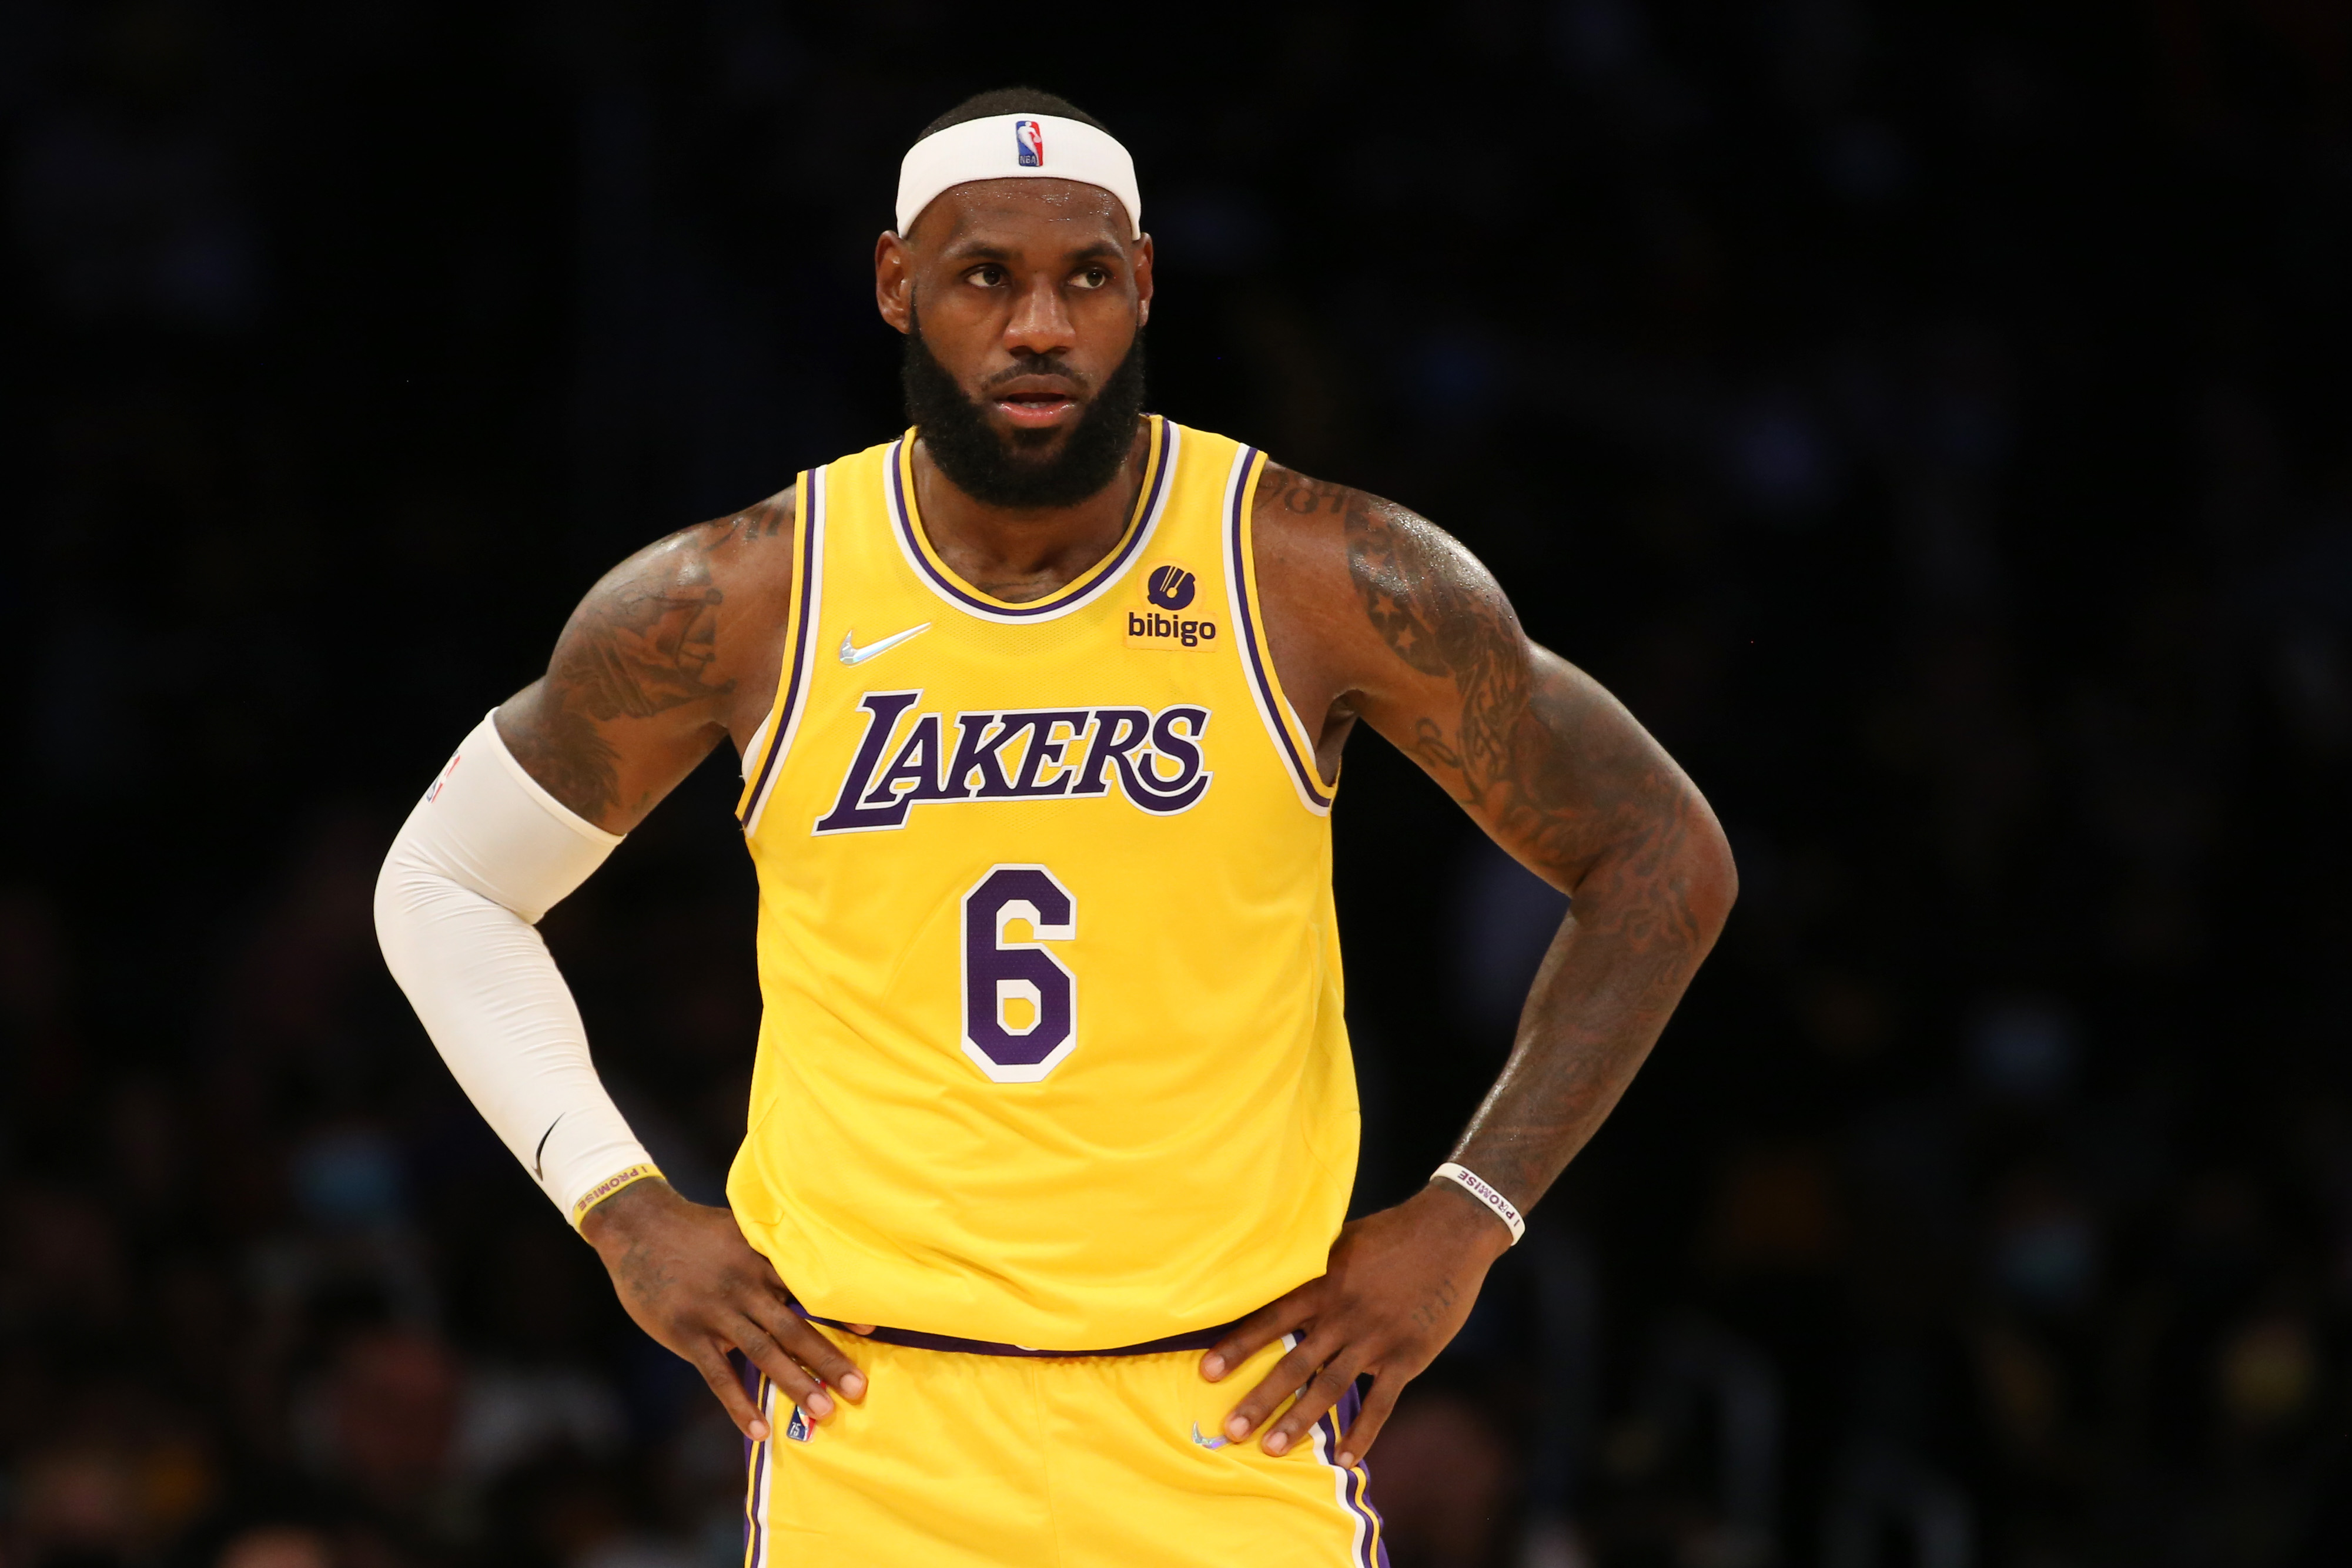 Los Angeles Lakers forward LeBron James (6) during the game against the Golden State Warriors at Staples Center. The Warriors won 111-99.